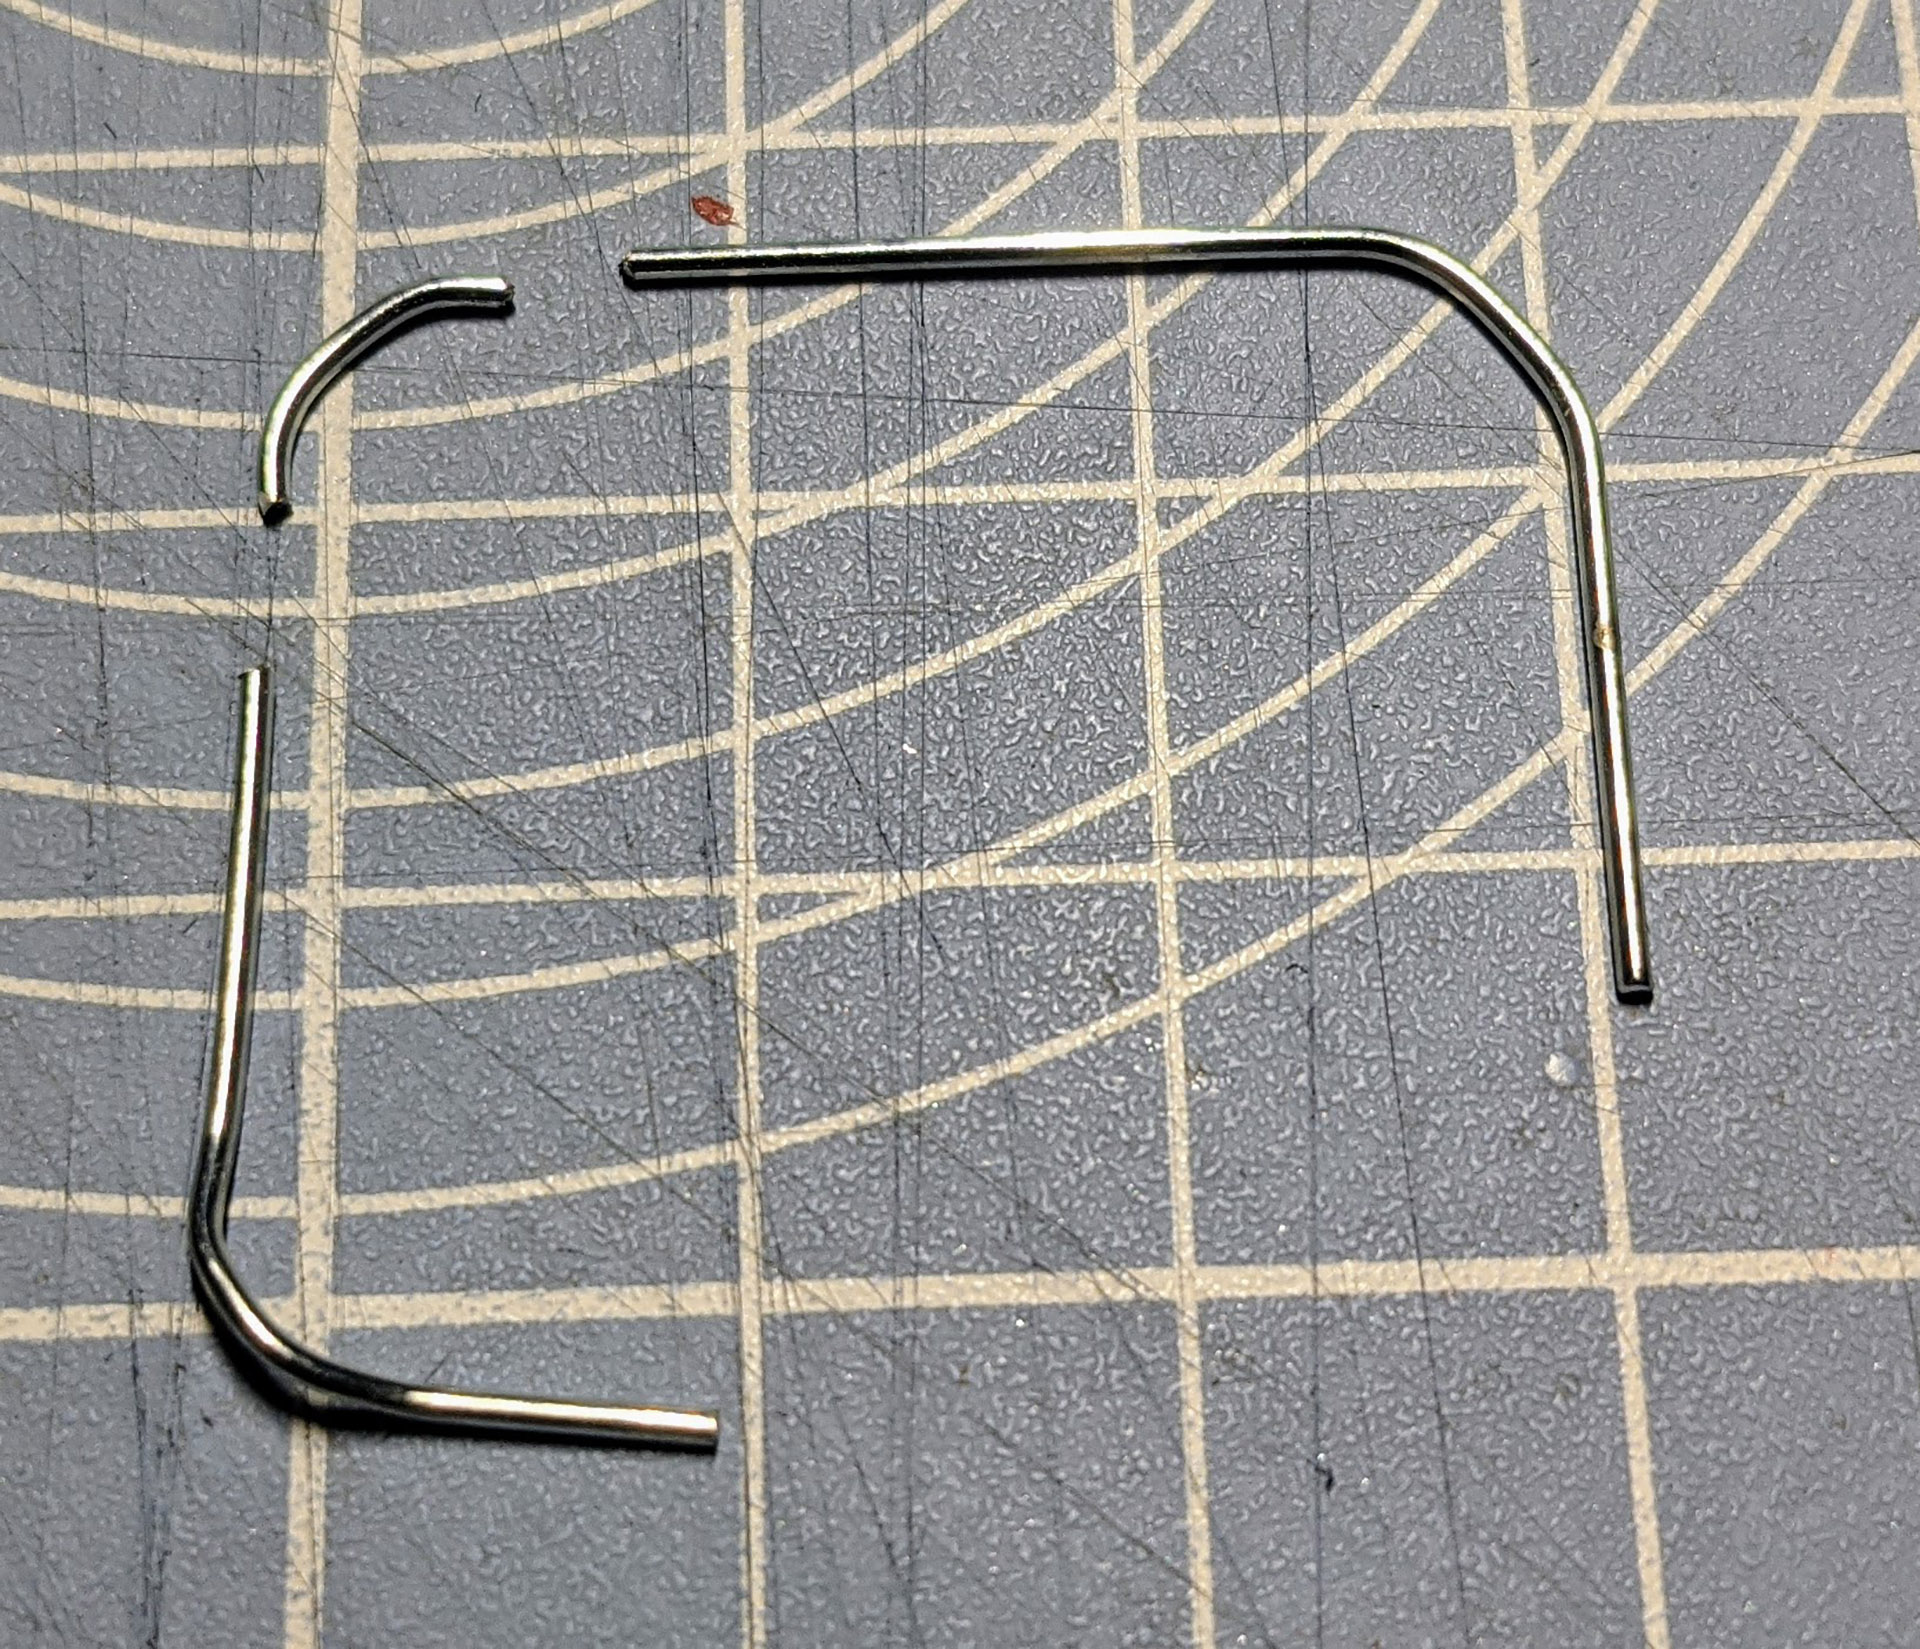 Cut the paperclip as shown to produce two L shapes.